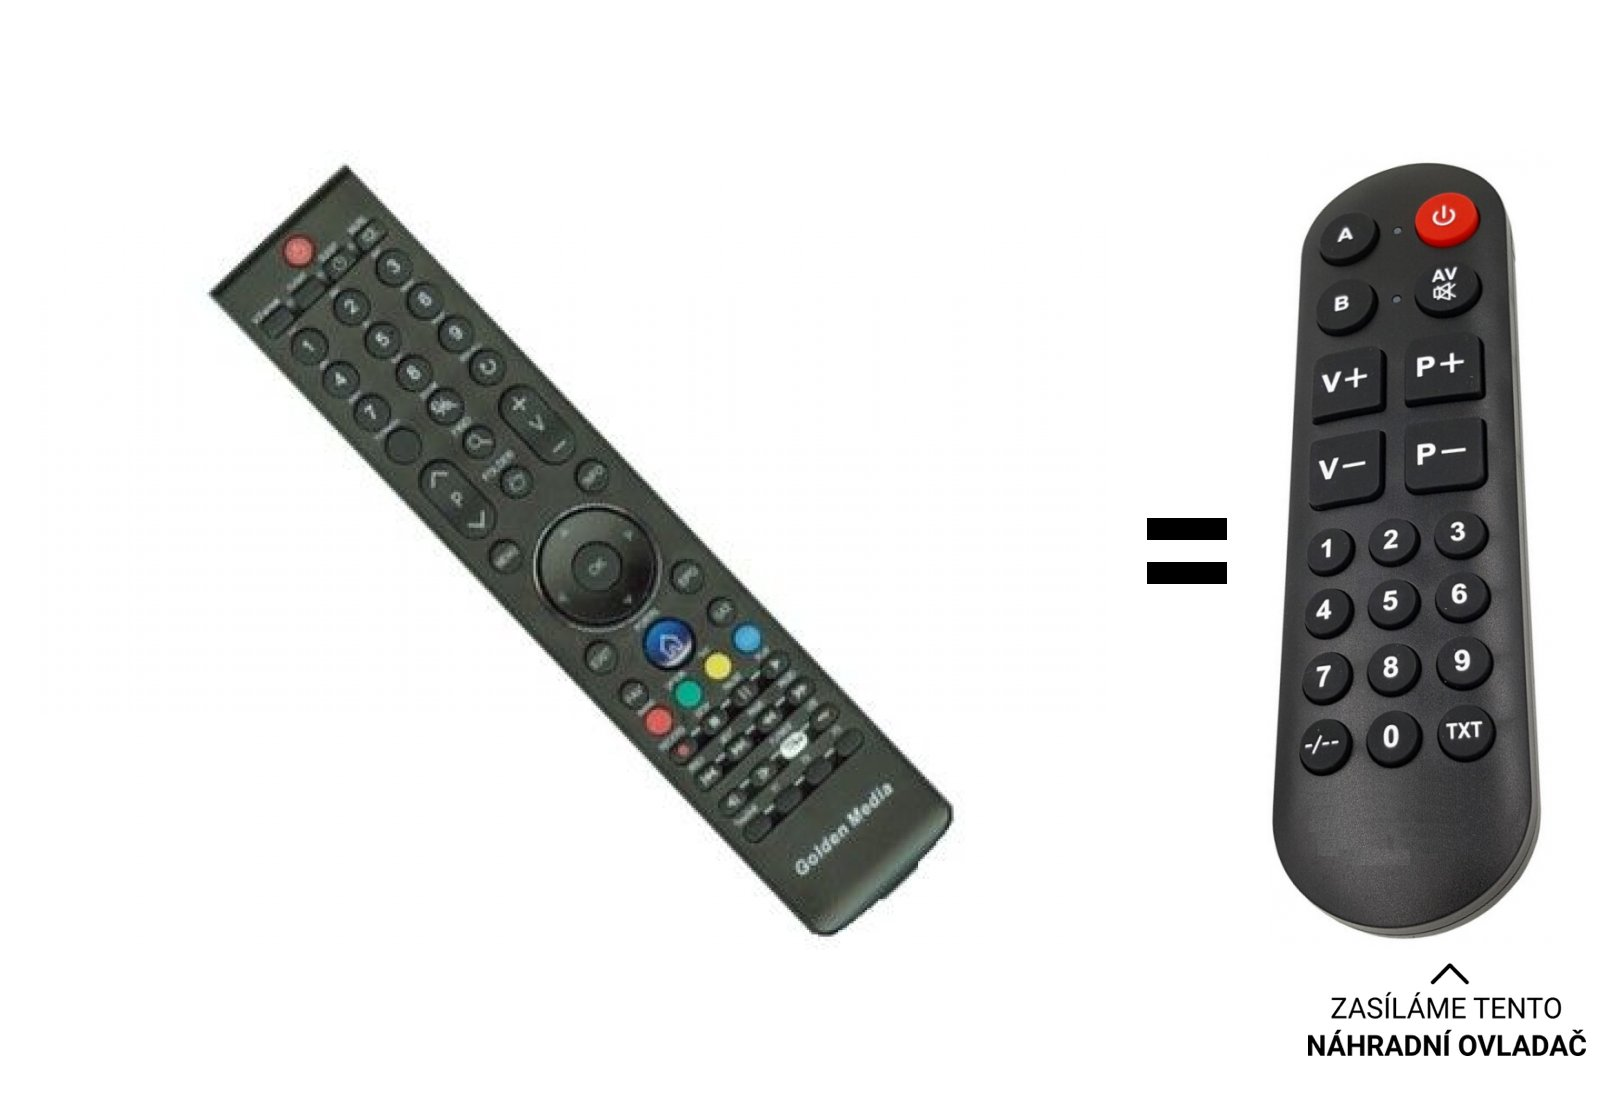 Golden media GM Spark reloaded replacement remote control for seniors